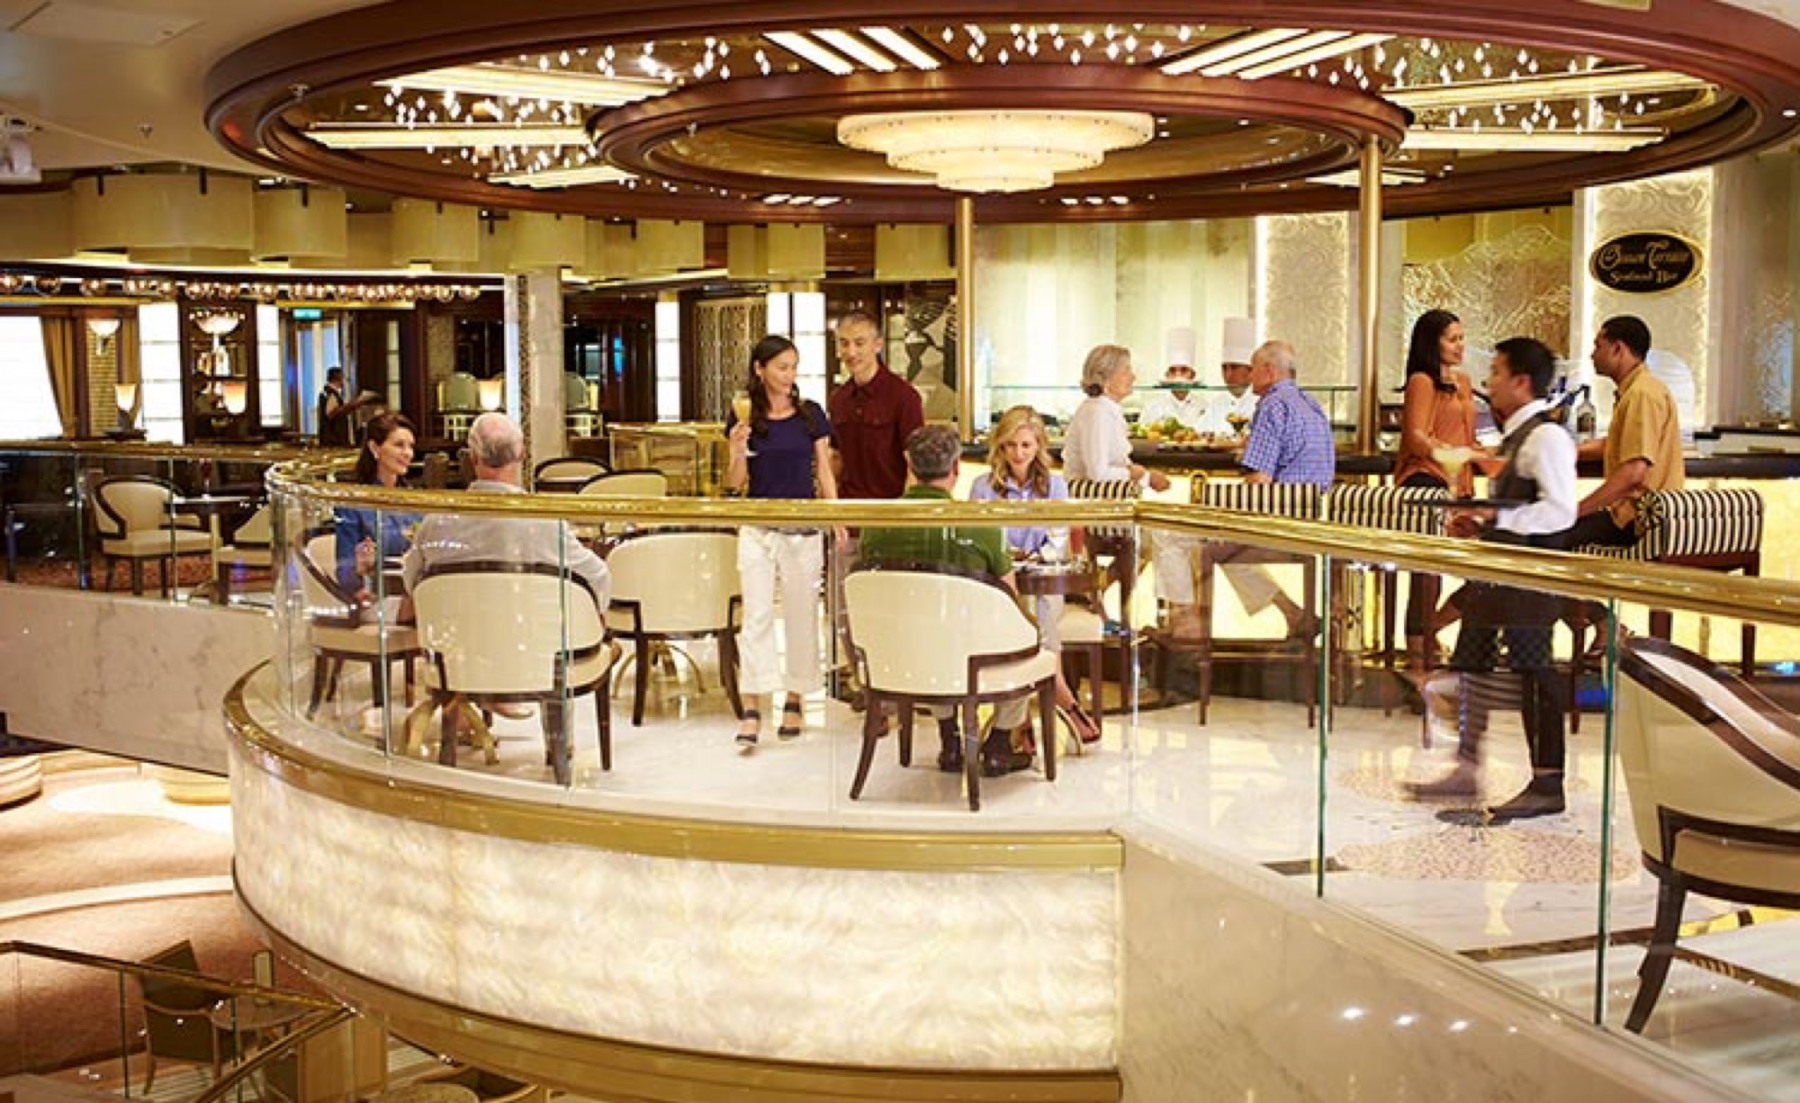 Princess Cruises Royal Class Interior ocean terrace.jpg